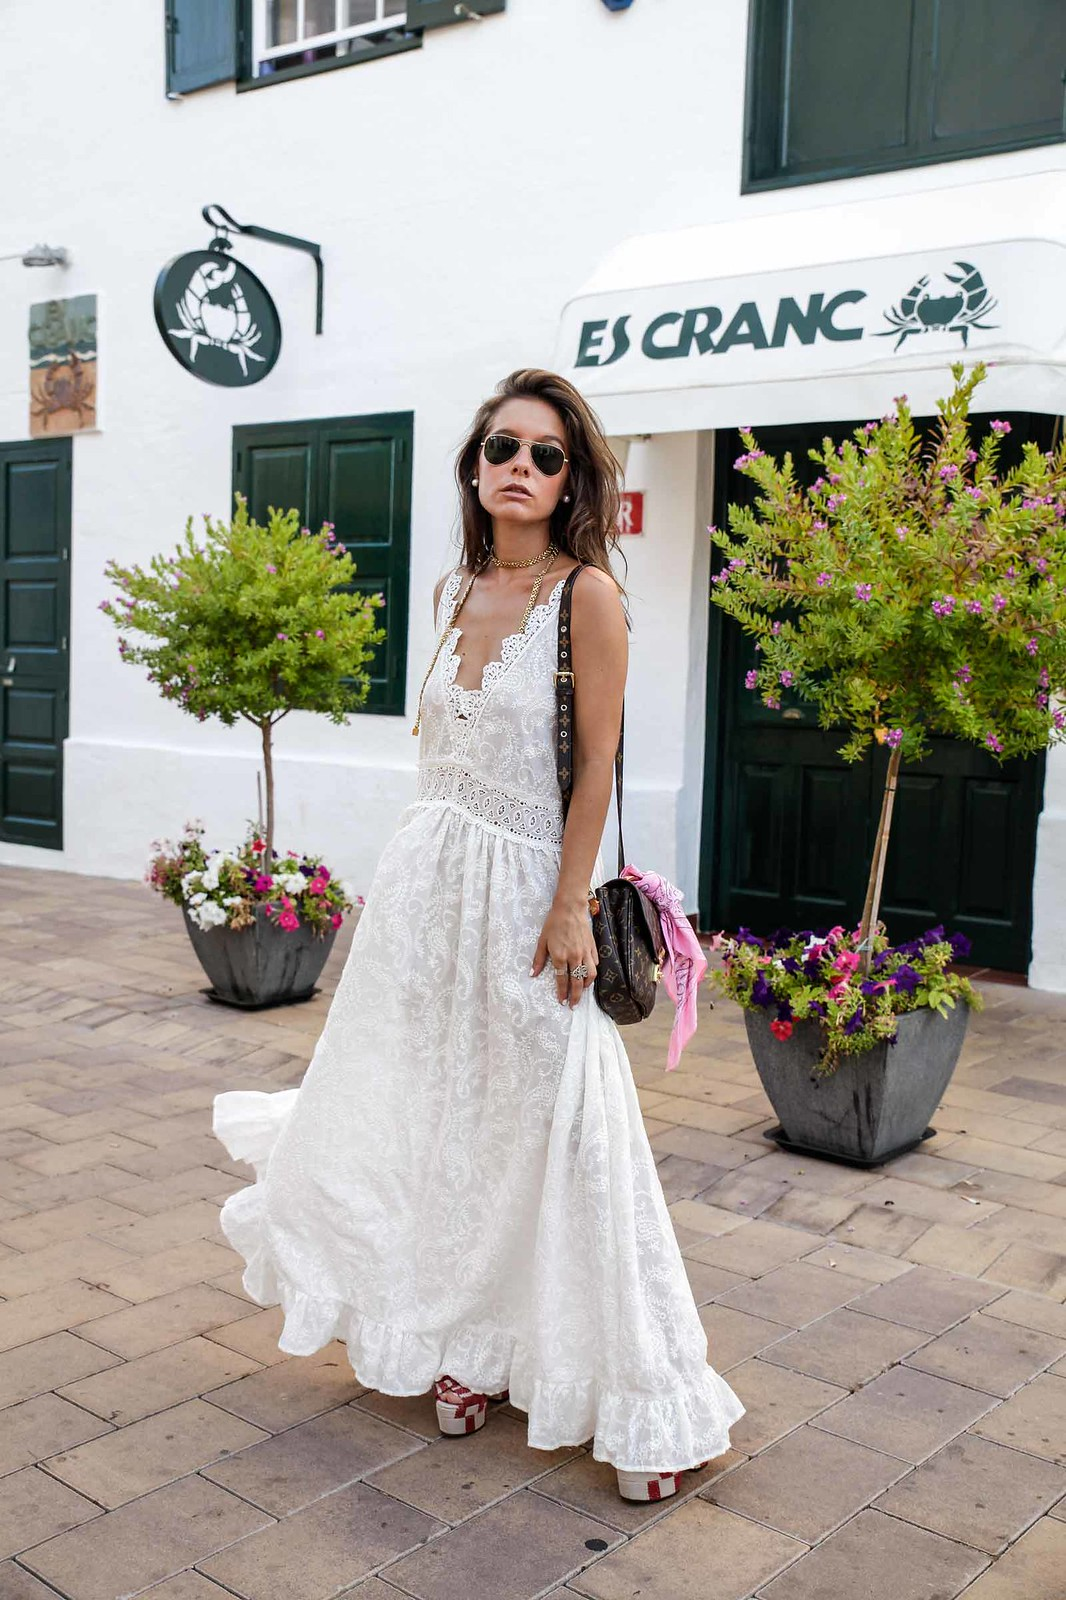 09_vestido_blanco_ibizenco_miss_june_long_dress_outfit_rayban_louis_vuitton_bag_outfit_streetstyle_influencer_barcelona_theguestgirl_the_guest_girl_barcelona_influencer